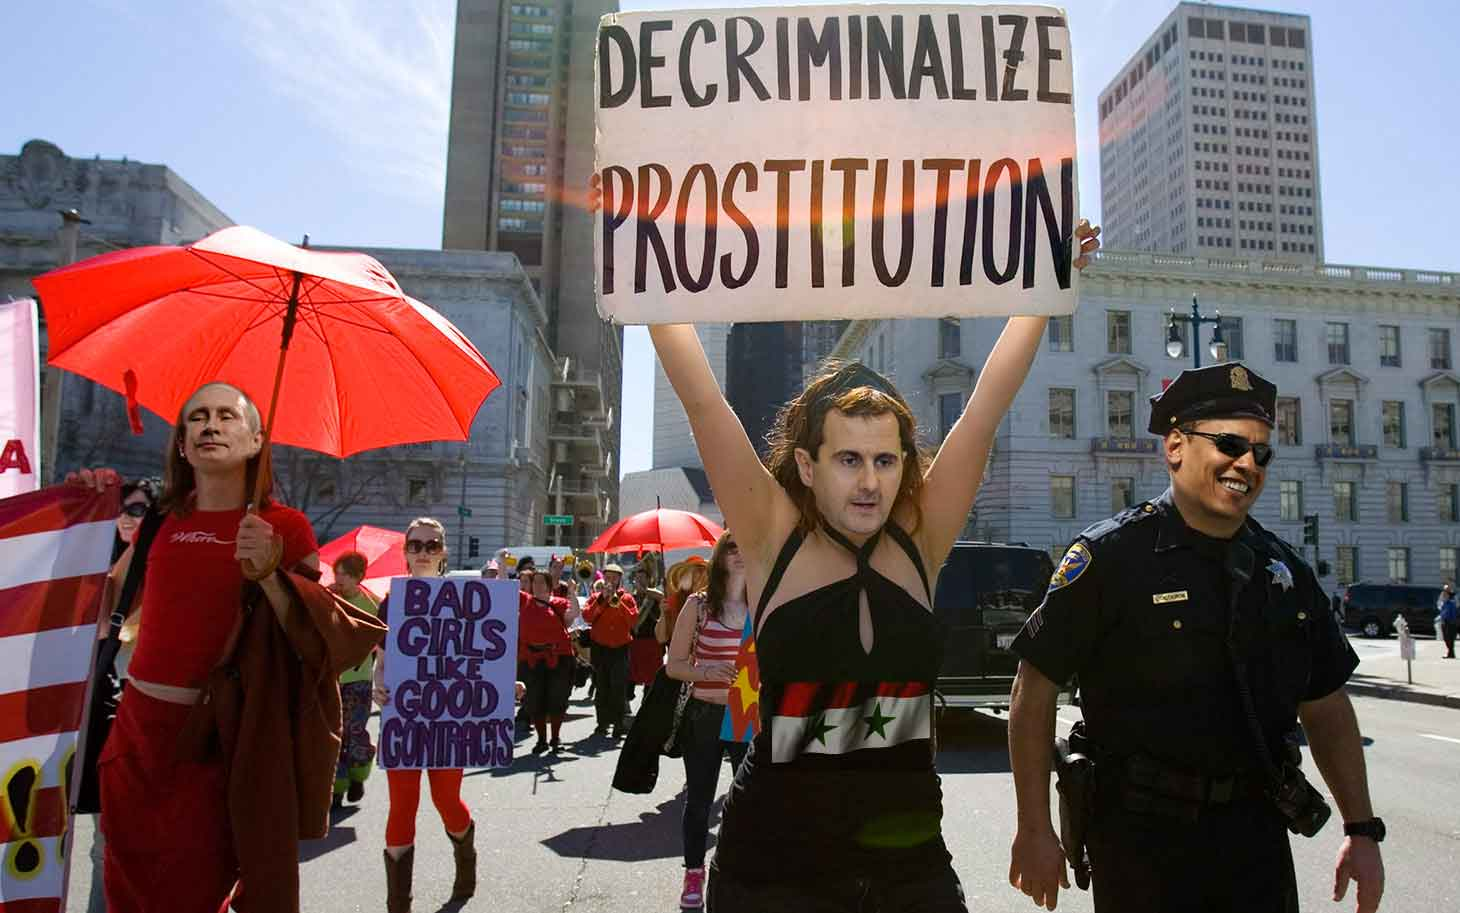 ISIS Sex Slaves – Assad, Putin, and Obama Decriminalize Prostitution